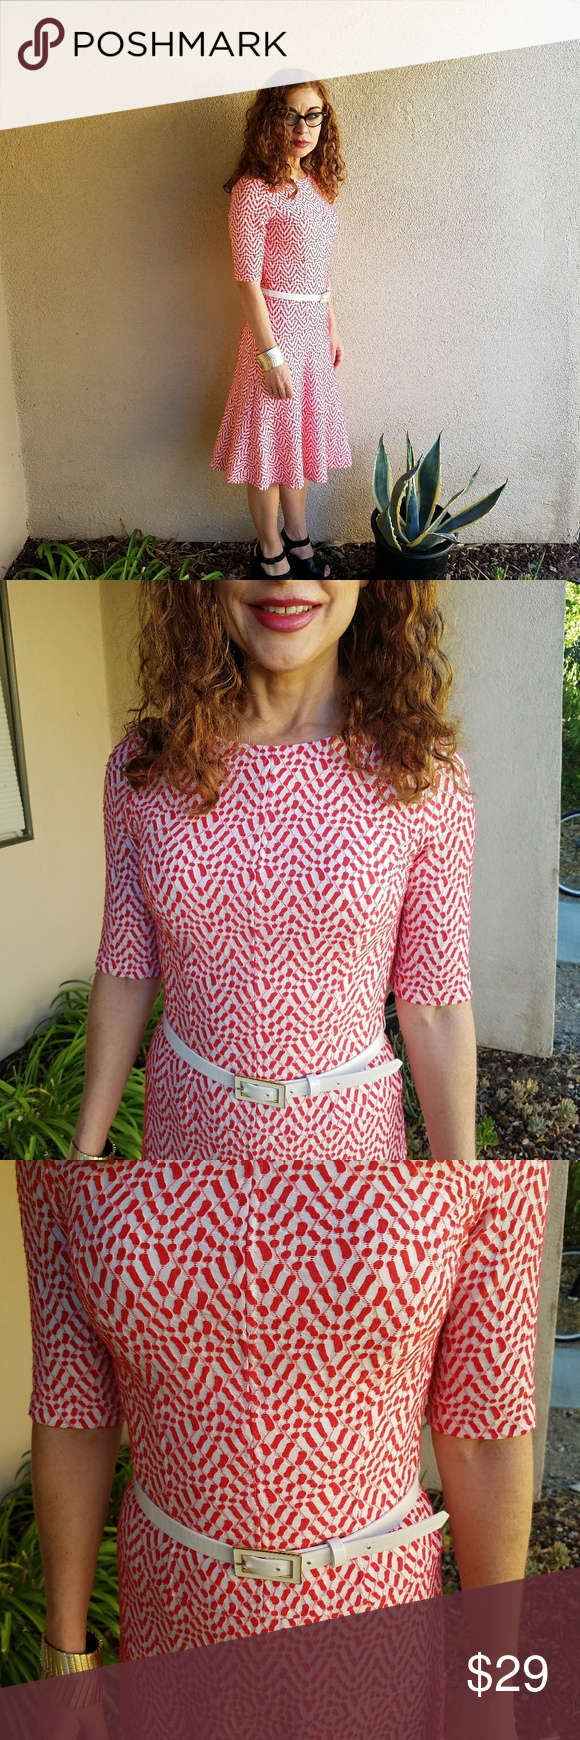 Anne klein red and white dress flared skirt leather belts and